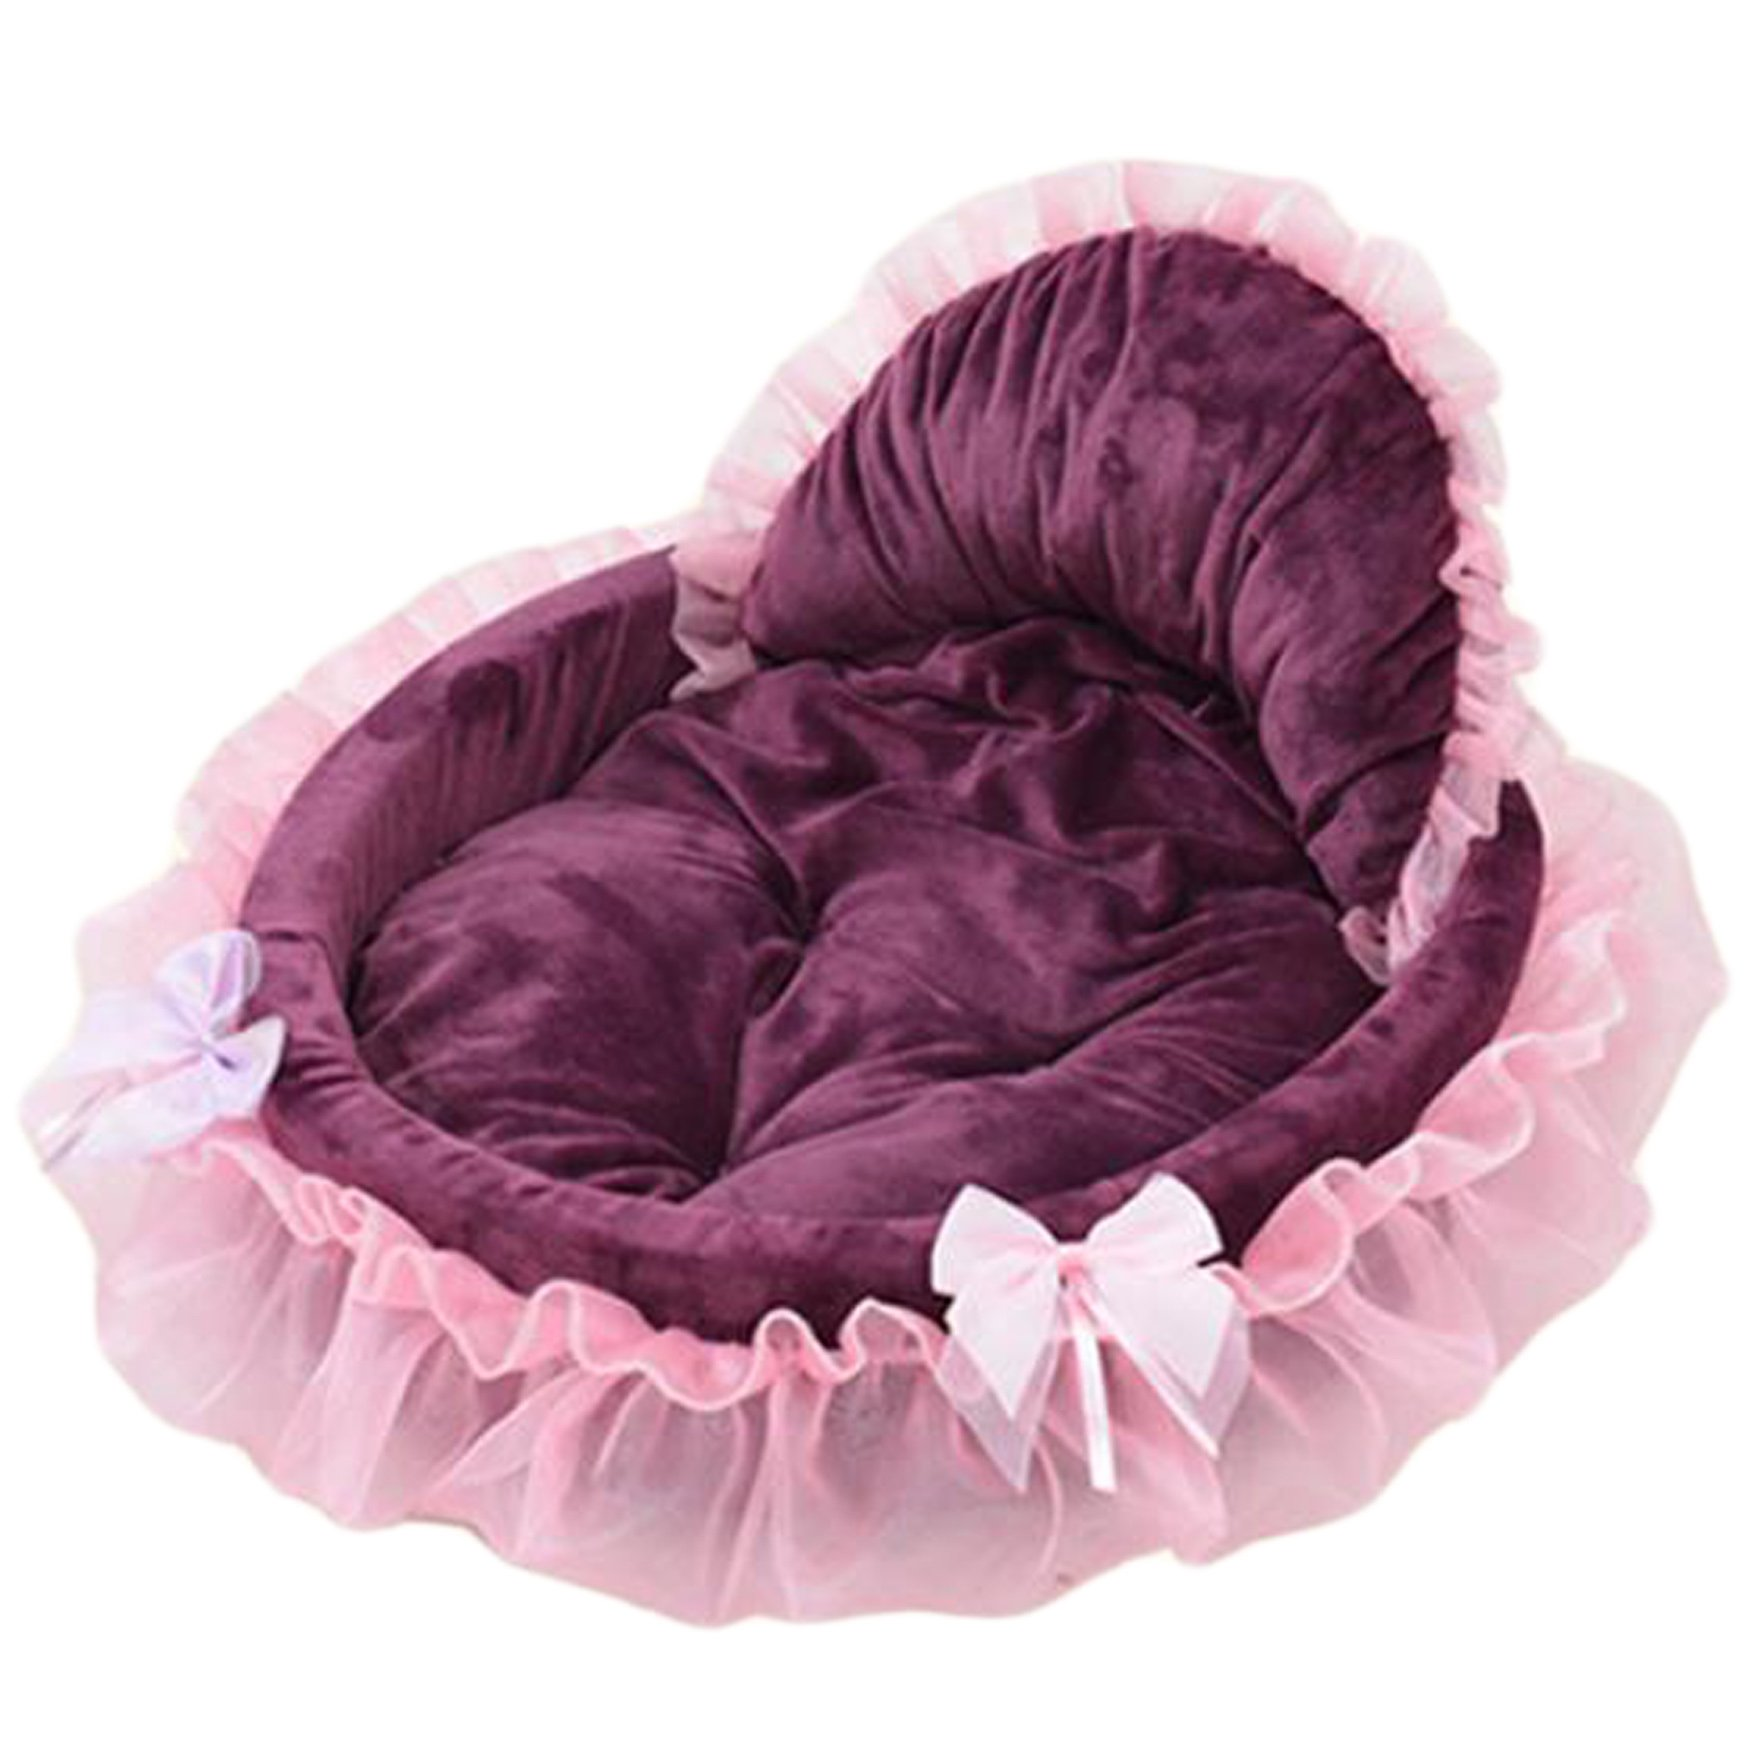 Saymequeen Coral Lace Princess Puppy Sofa Bed Cute Cat Cave Nest with Removable Warm Cushion (L, wine red)